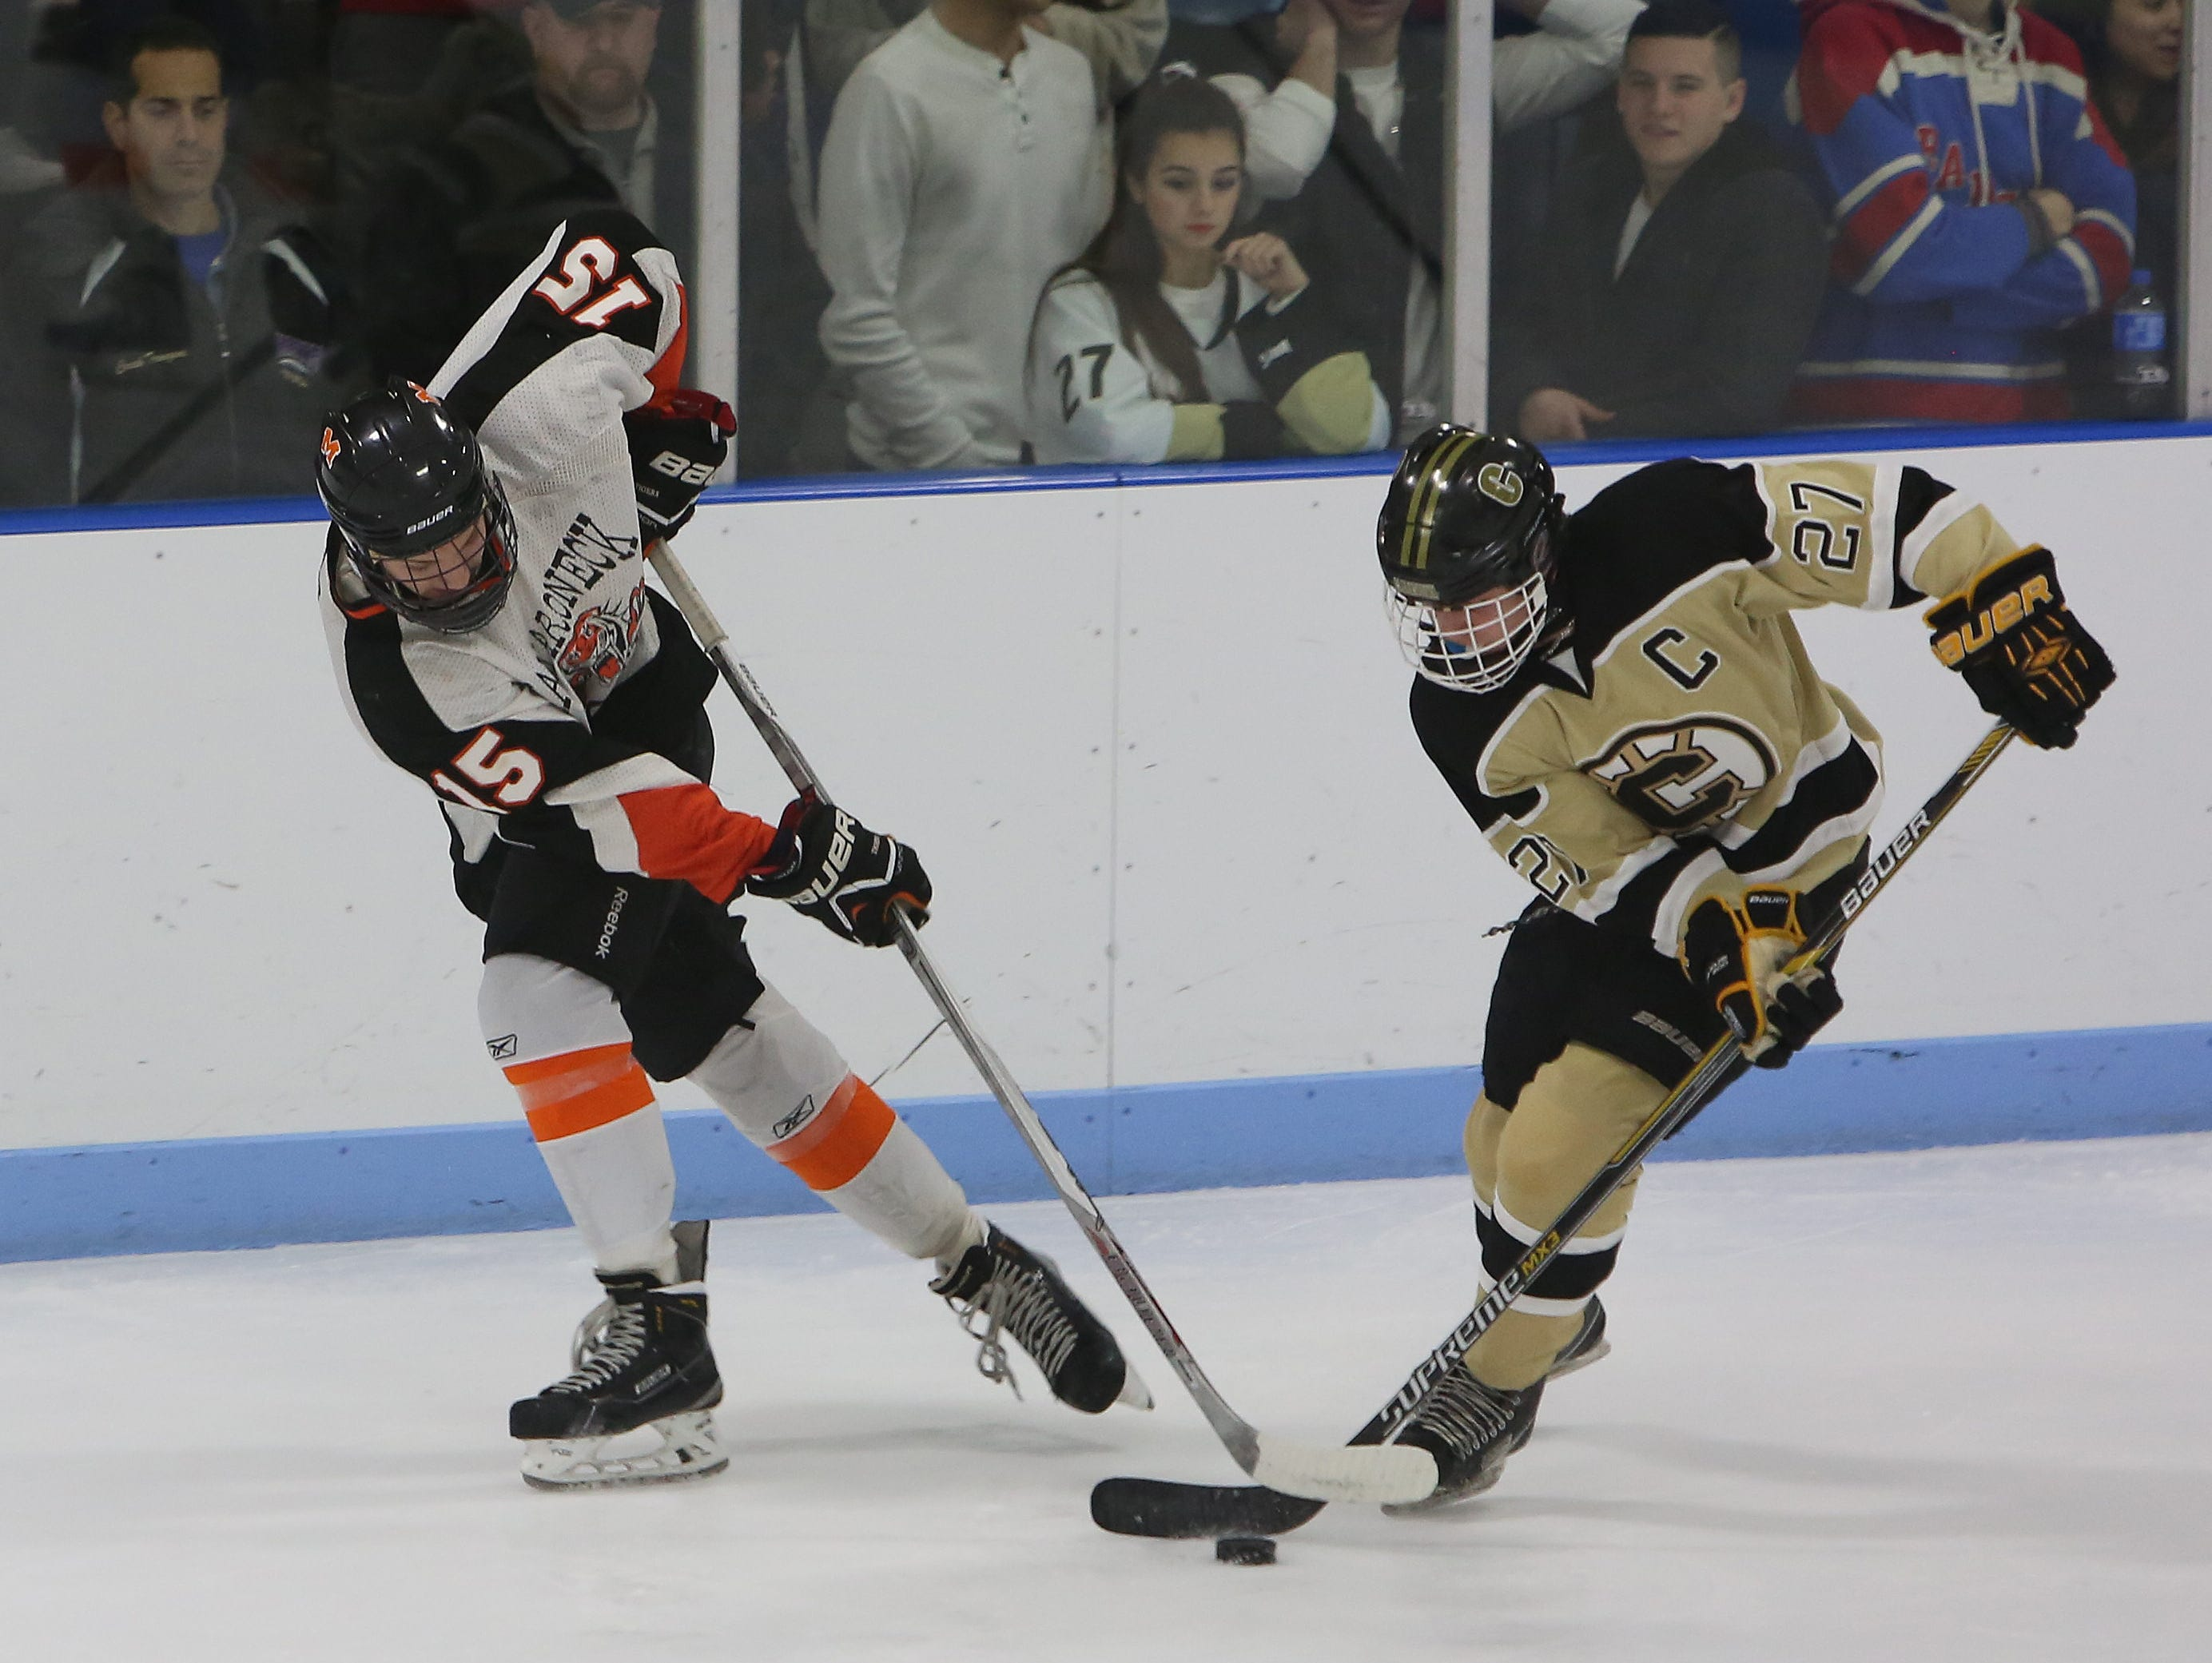 Mamaroneck's James Torre (15) and Clarkstown's Adam Marvin (27) battle for puck control during hockey action at Hommocks Park Ice Rink in Mamaroneck Dec. 22, 2015. Mamaroneck won the game 3-0.